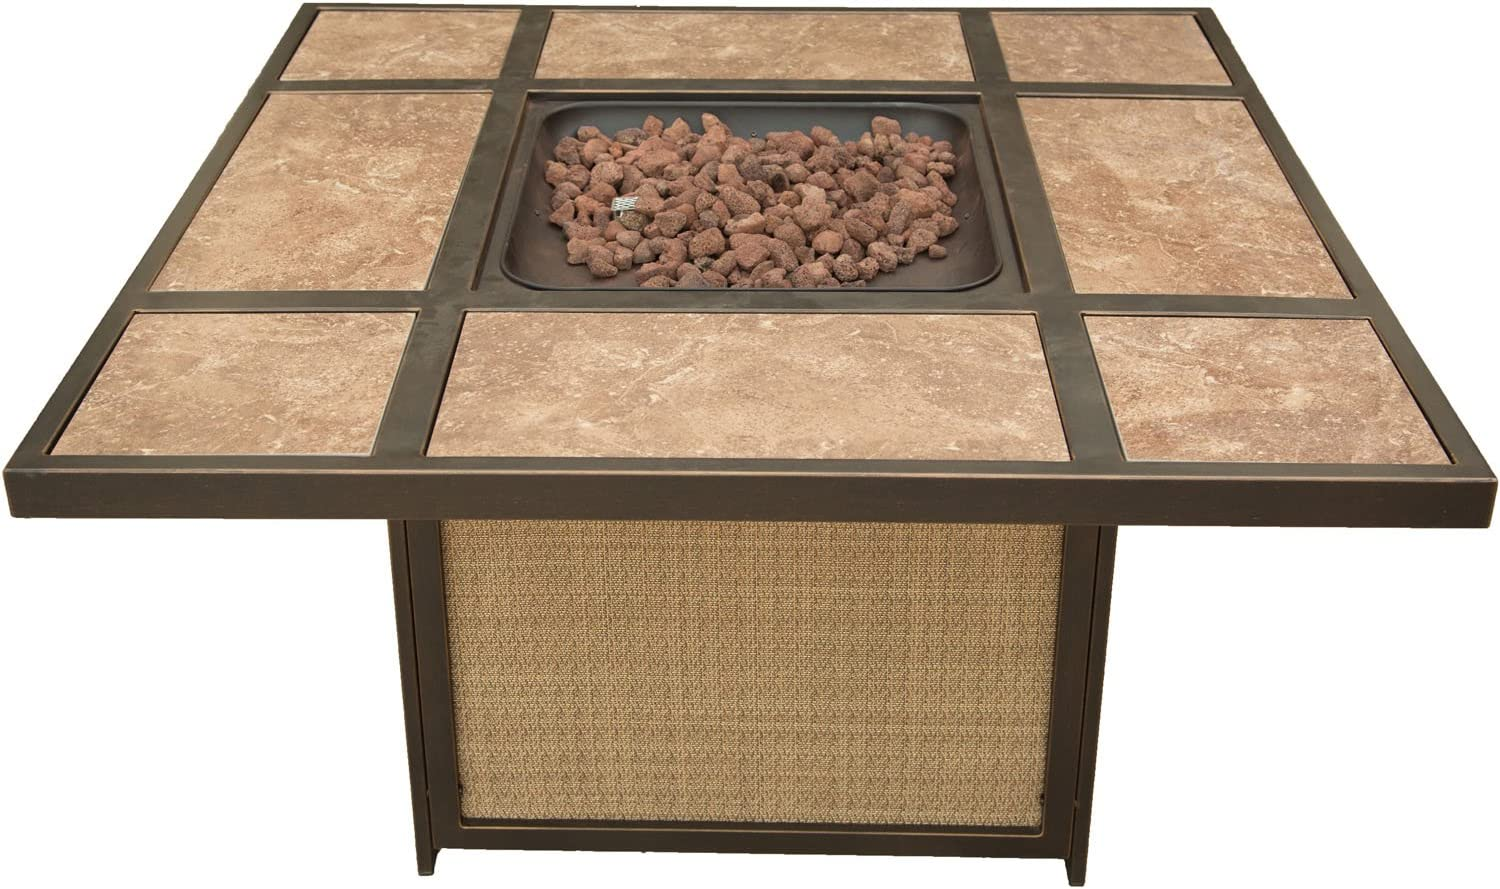 B06W2HBJQ8 Hanover TRADTILE1PCFP Traditions Tile-Top Fire Pit Outdoor Furniture, Brown 71mkj3NbvAL.SL1500_